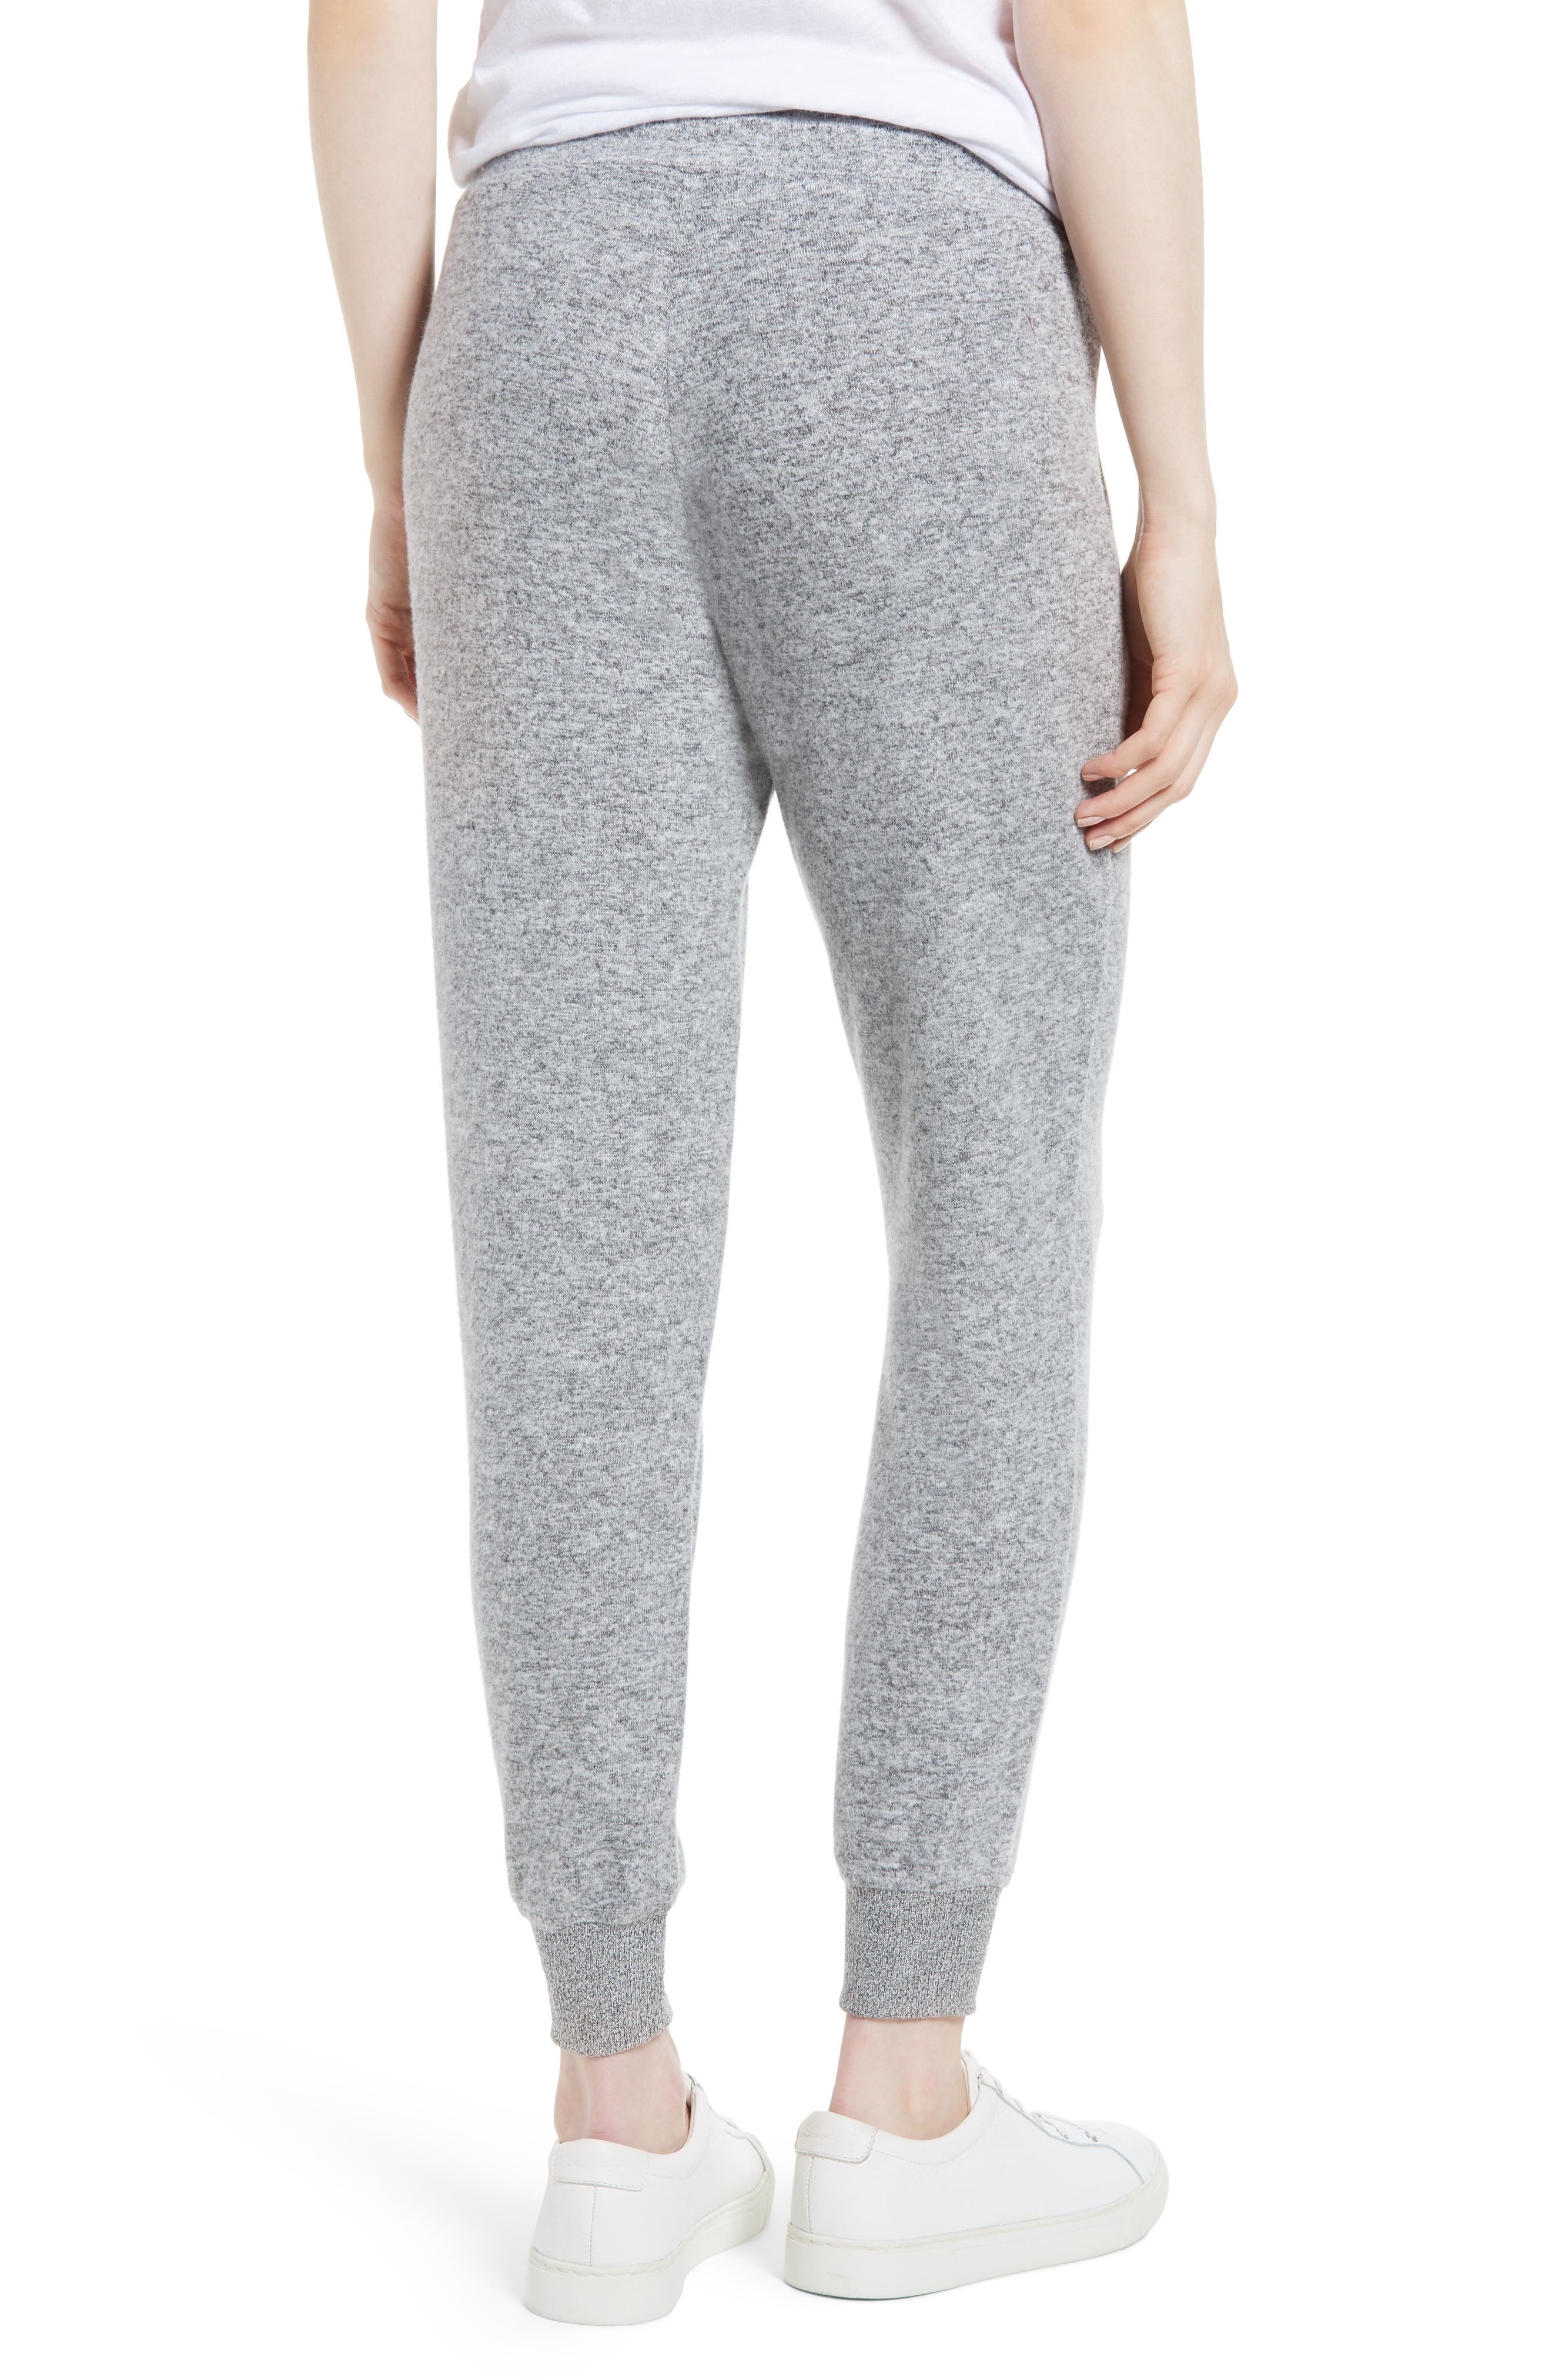 x Living in Yellow Skye Cozy Jogger Pants,                             Alternate thumbnail 3, color,                             Heather Grey